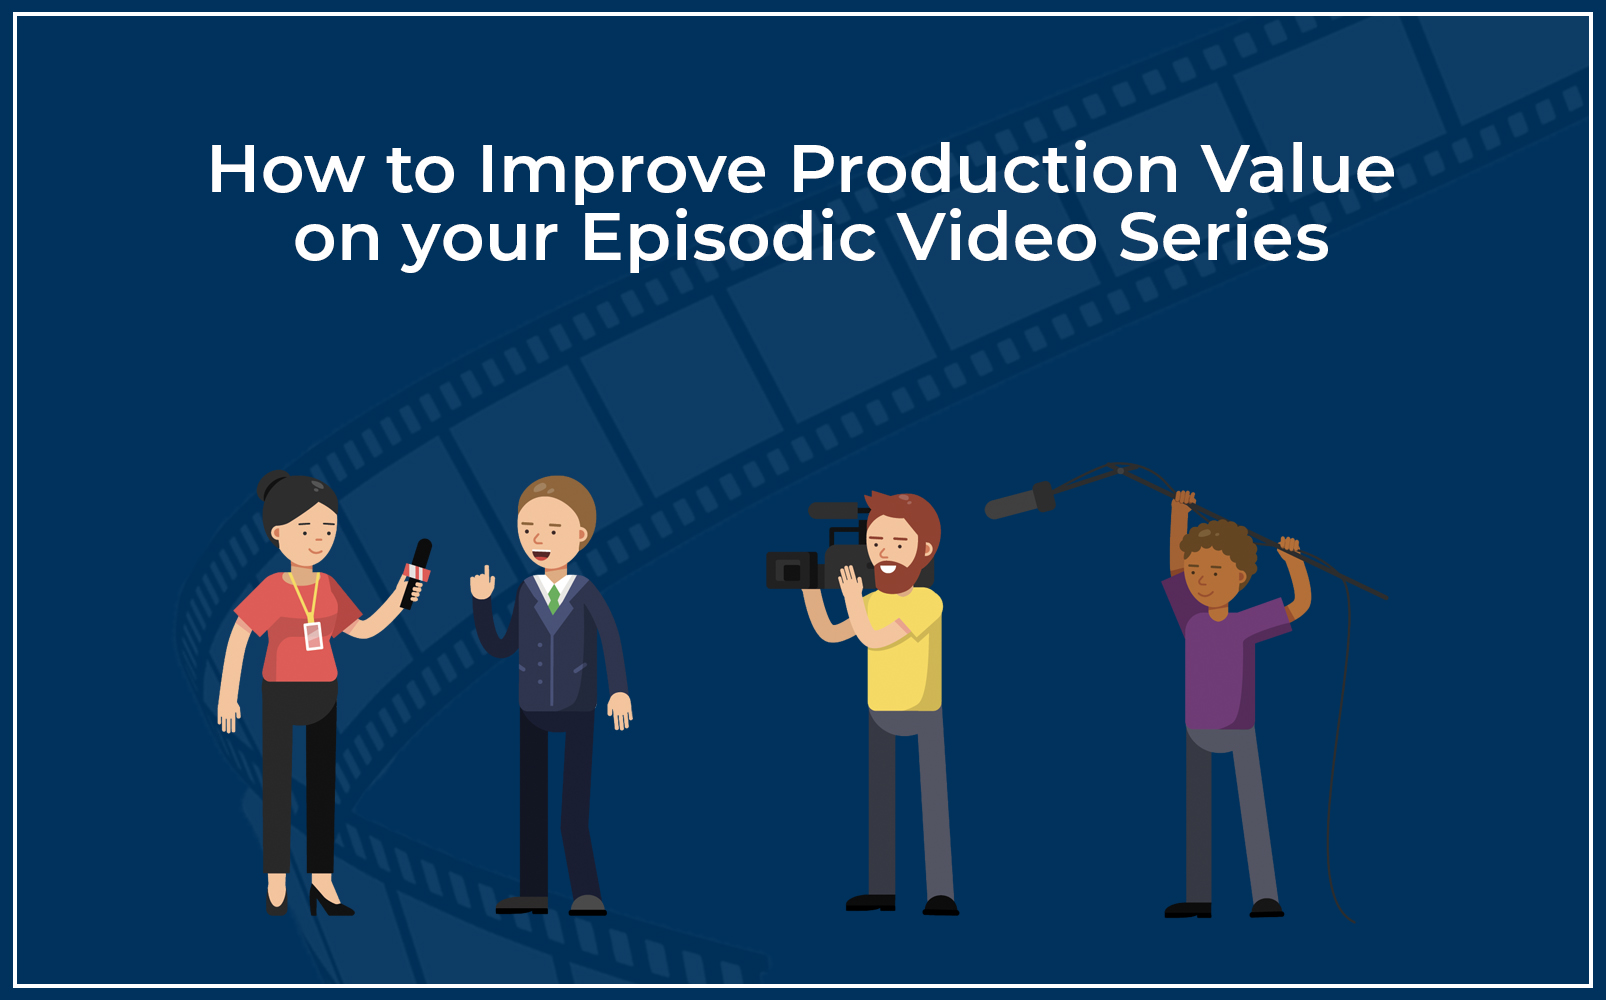 how to improve production value on your episodic video series